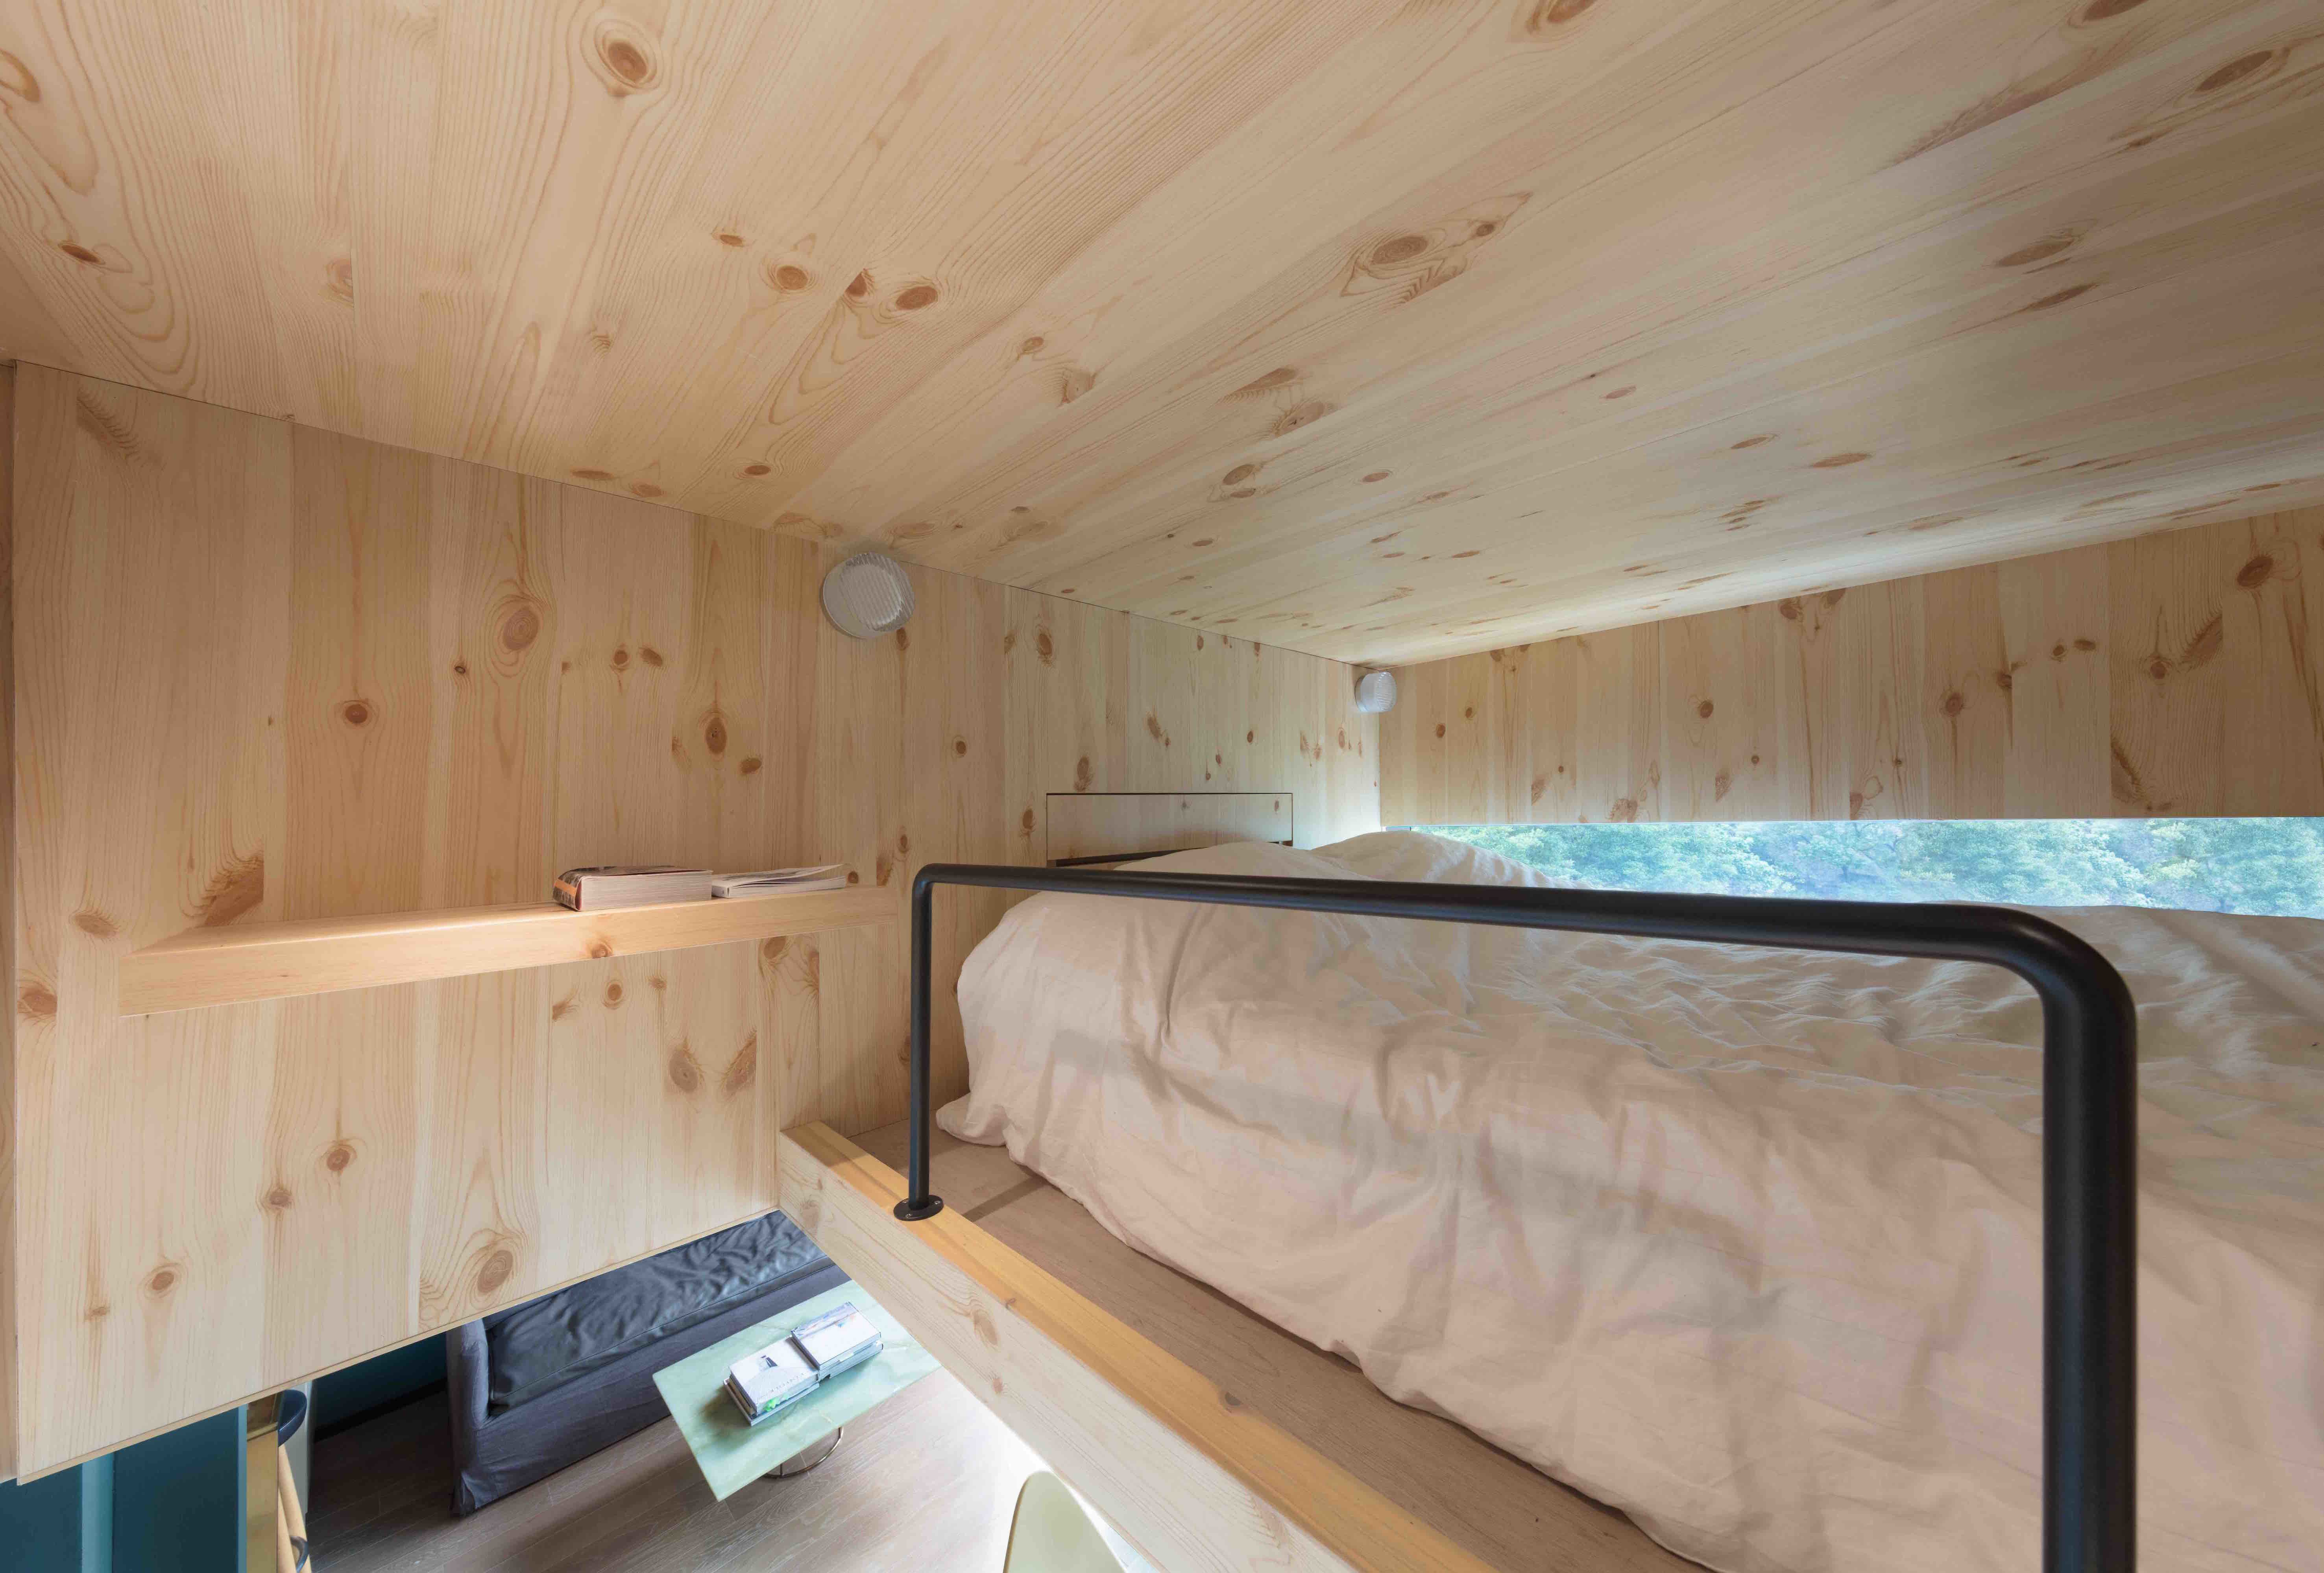 Mini loft bed with slide  Photo  of  in A Tiny Hong Kong Apartment With a Tree House